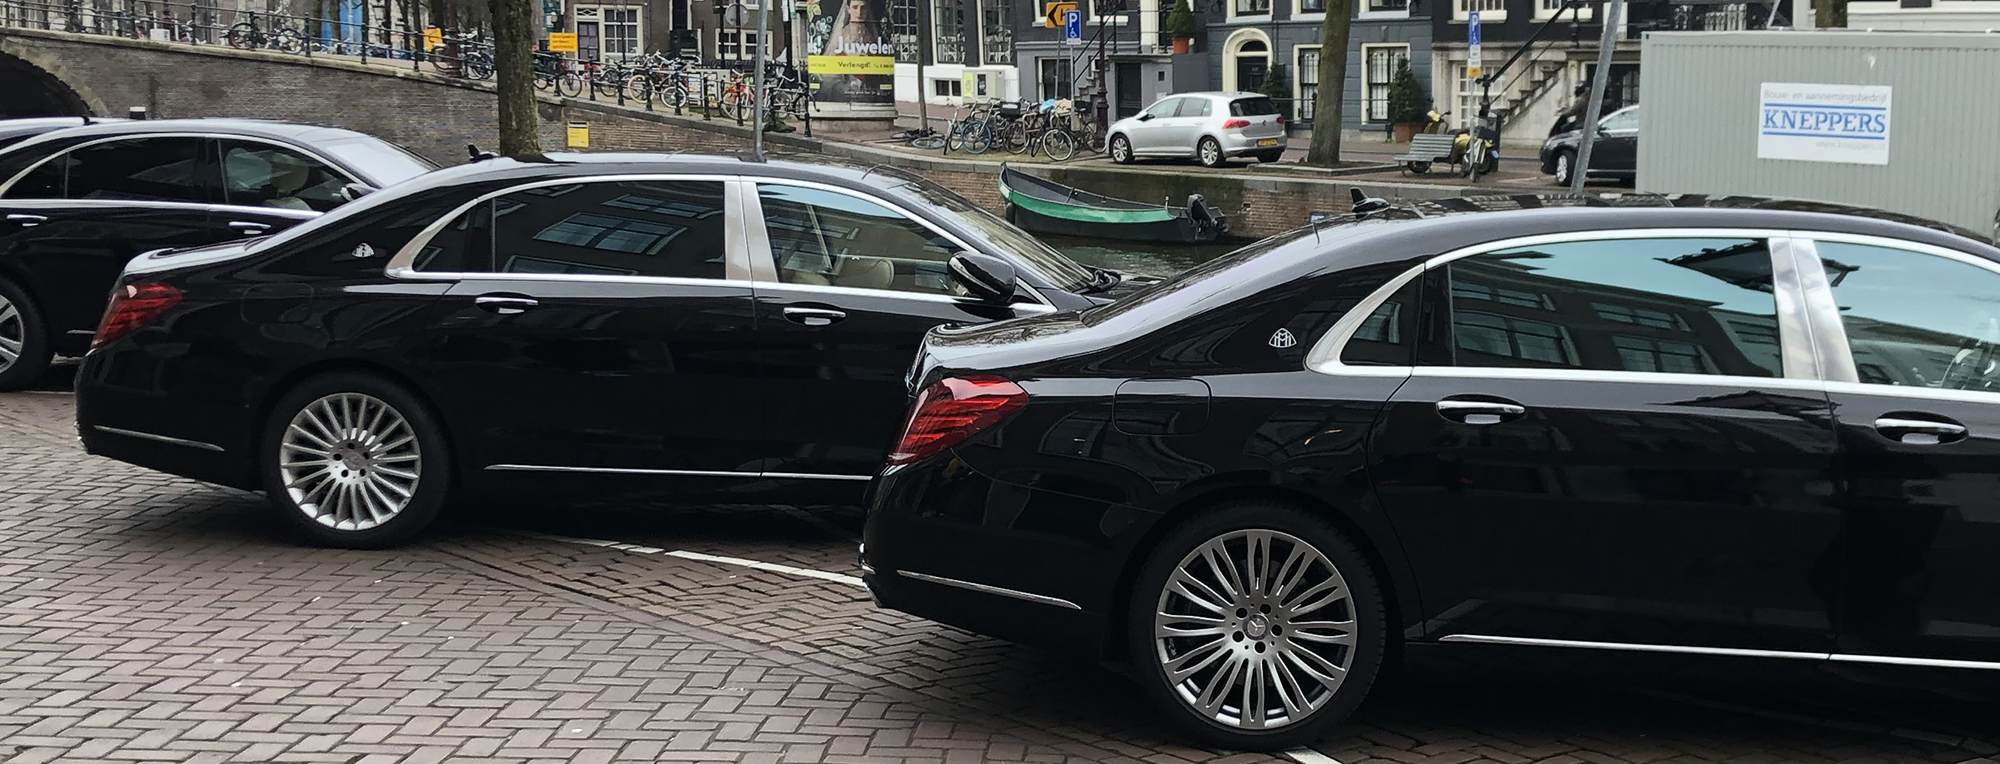 Luxury Hotel Transfer Service for Amsterdam